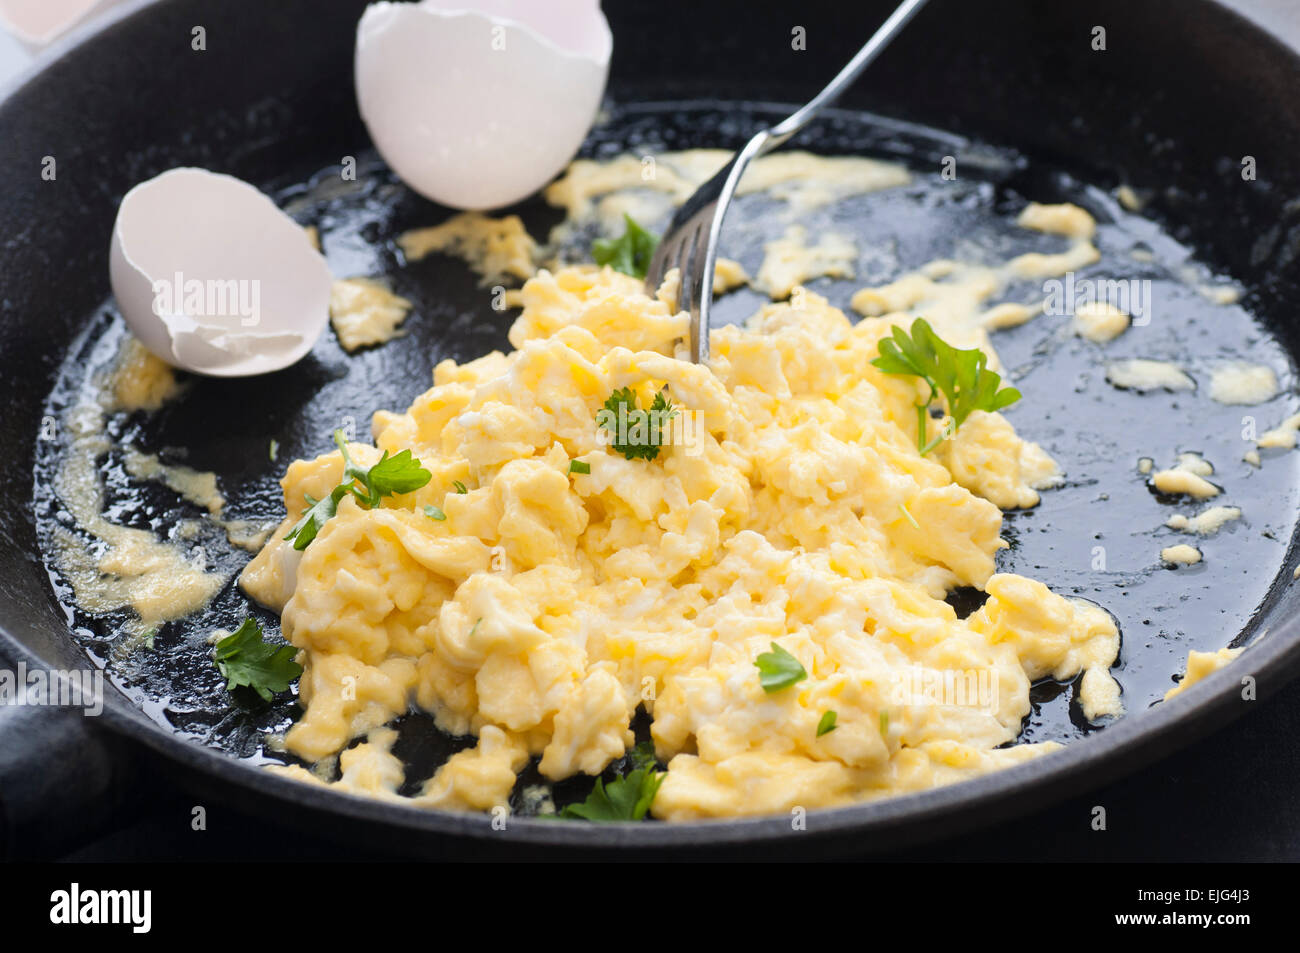 Eggs scrambled with double cream, fried in butter. All organic. Parsley on top. - Stock Image